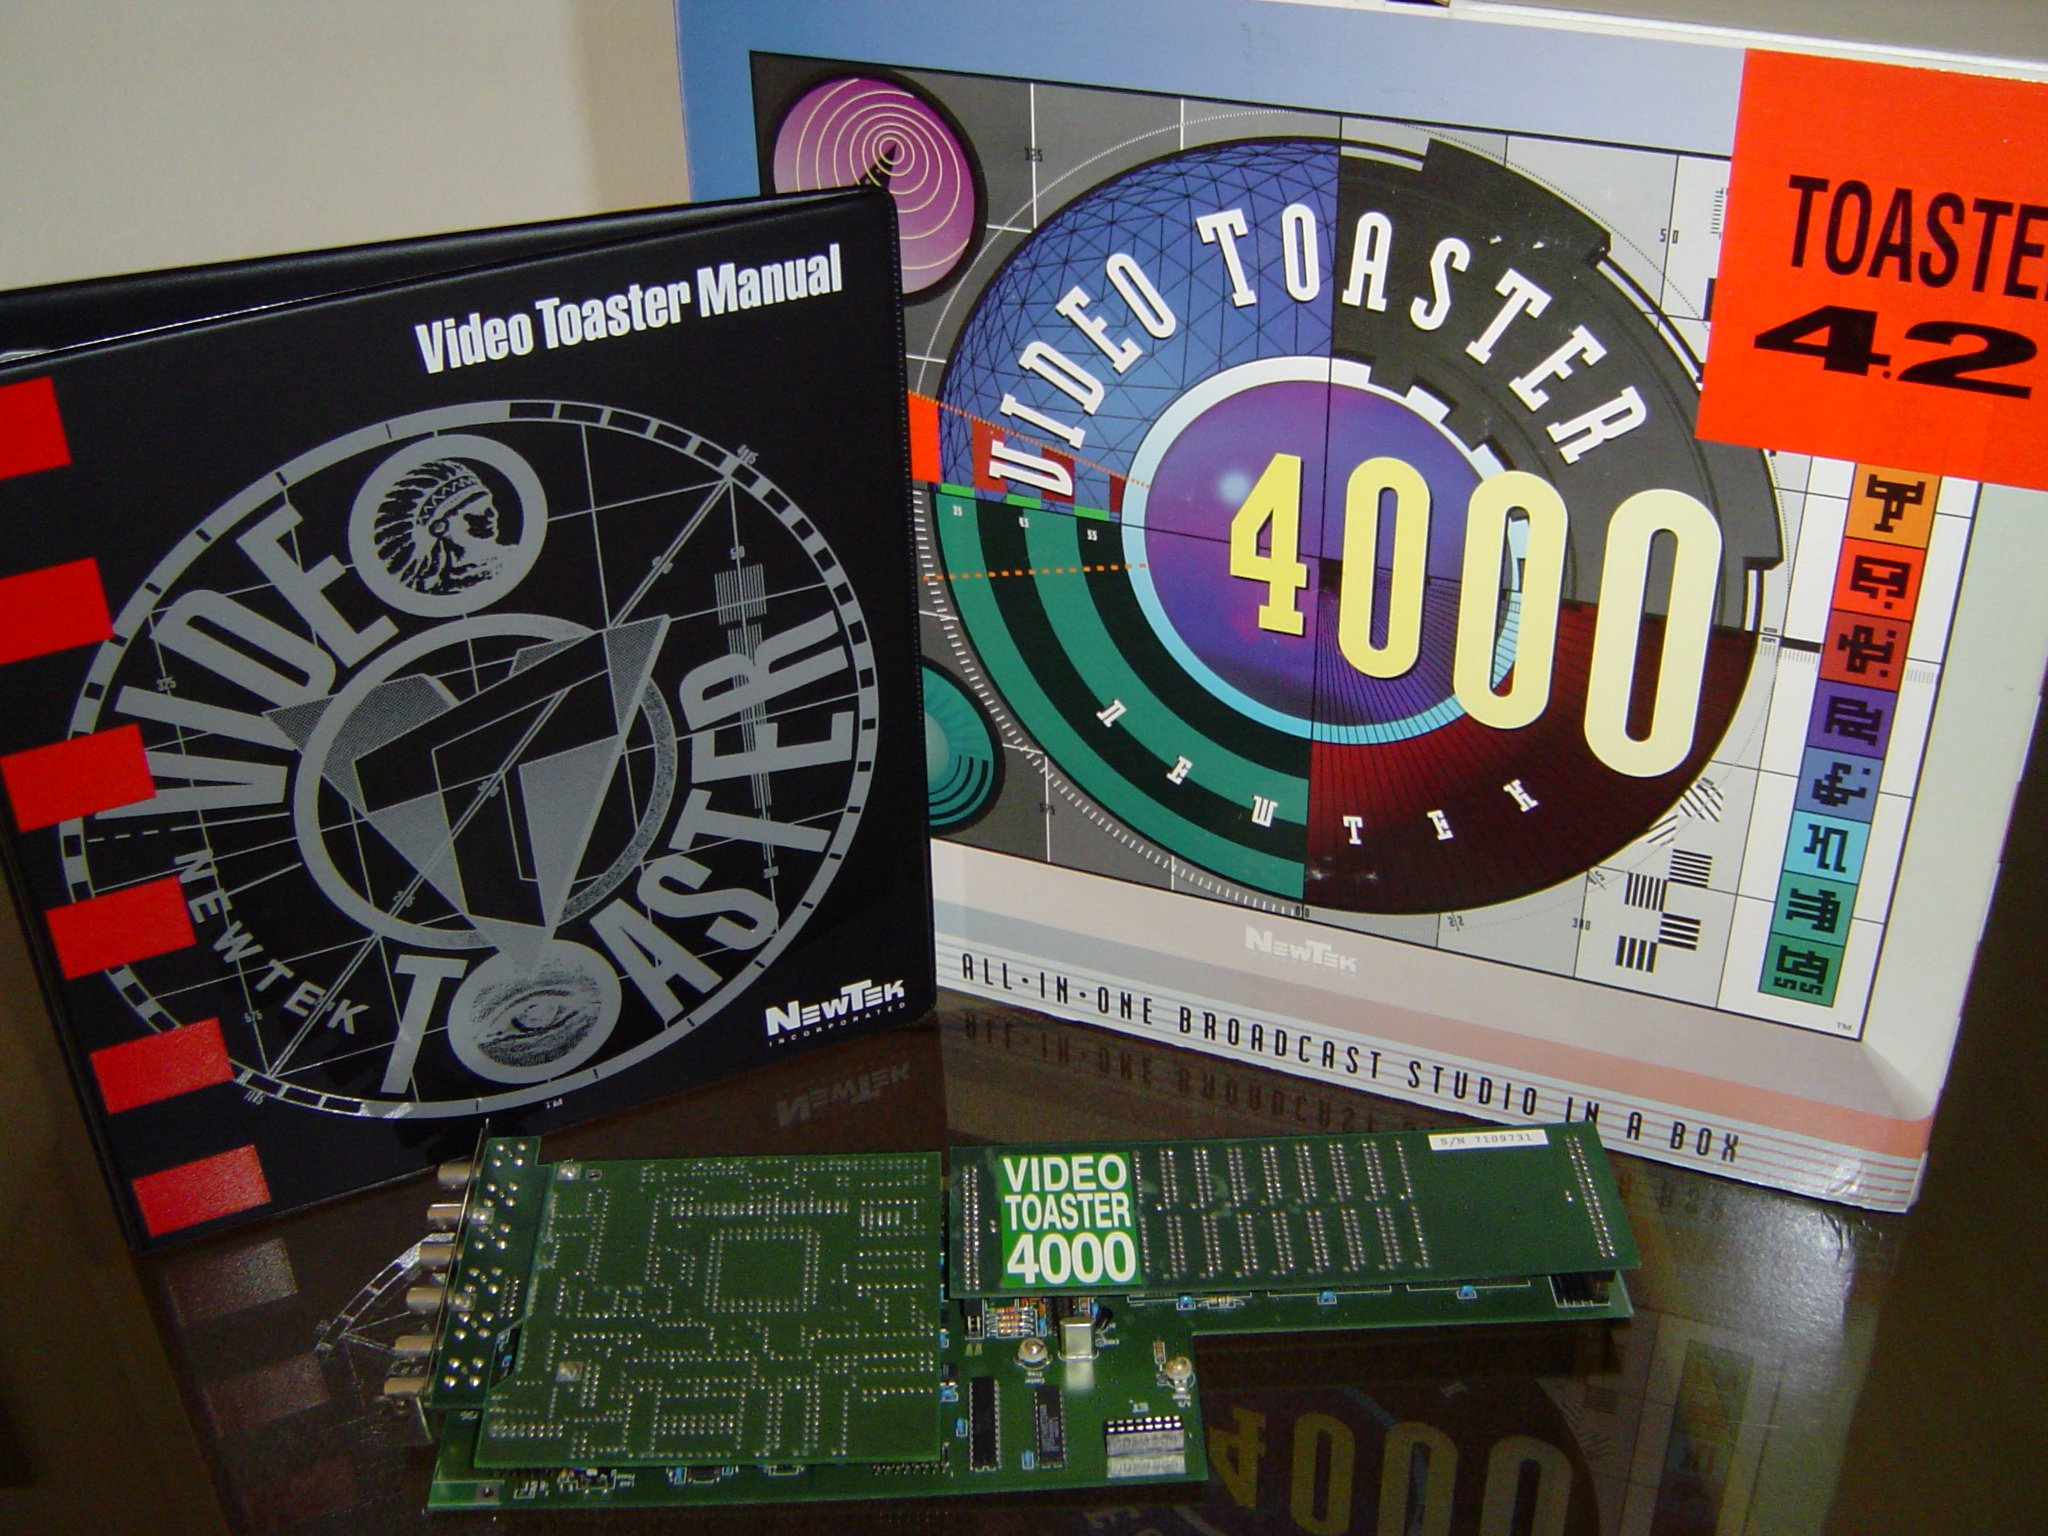 The Video Toaster 4000.